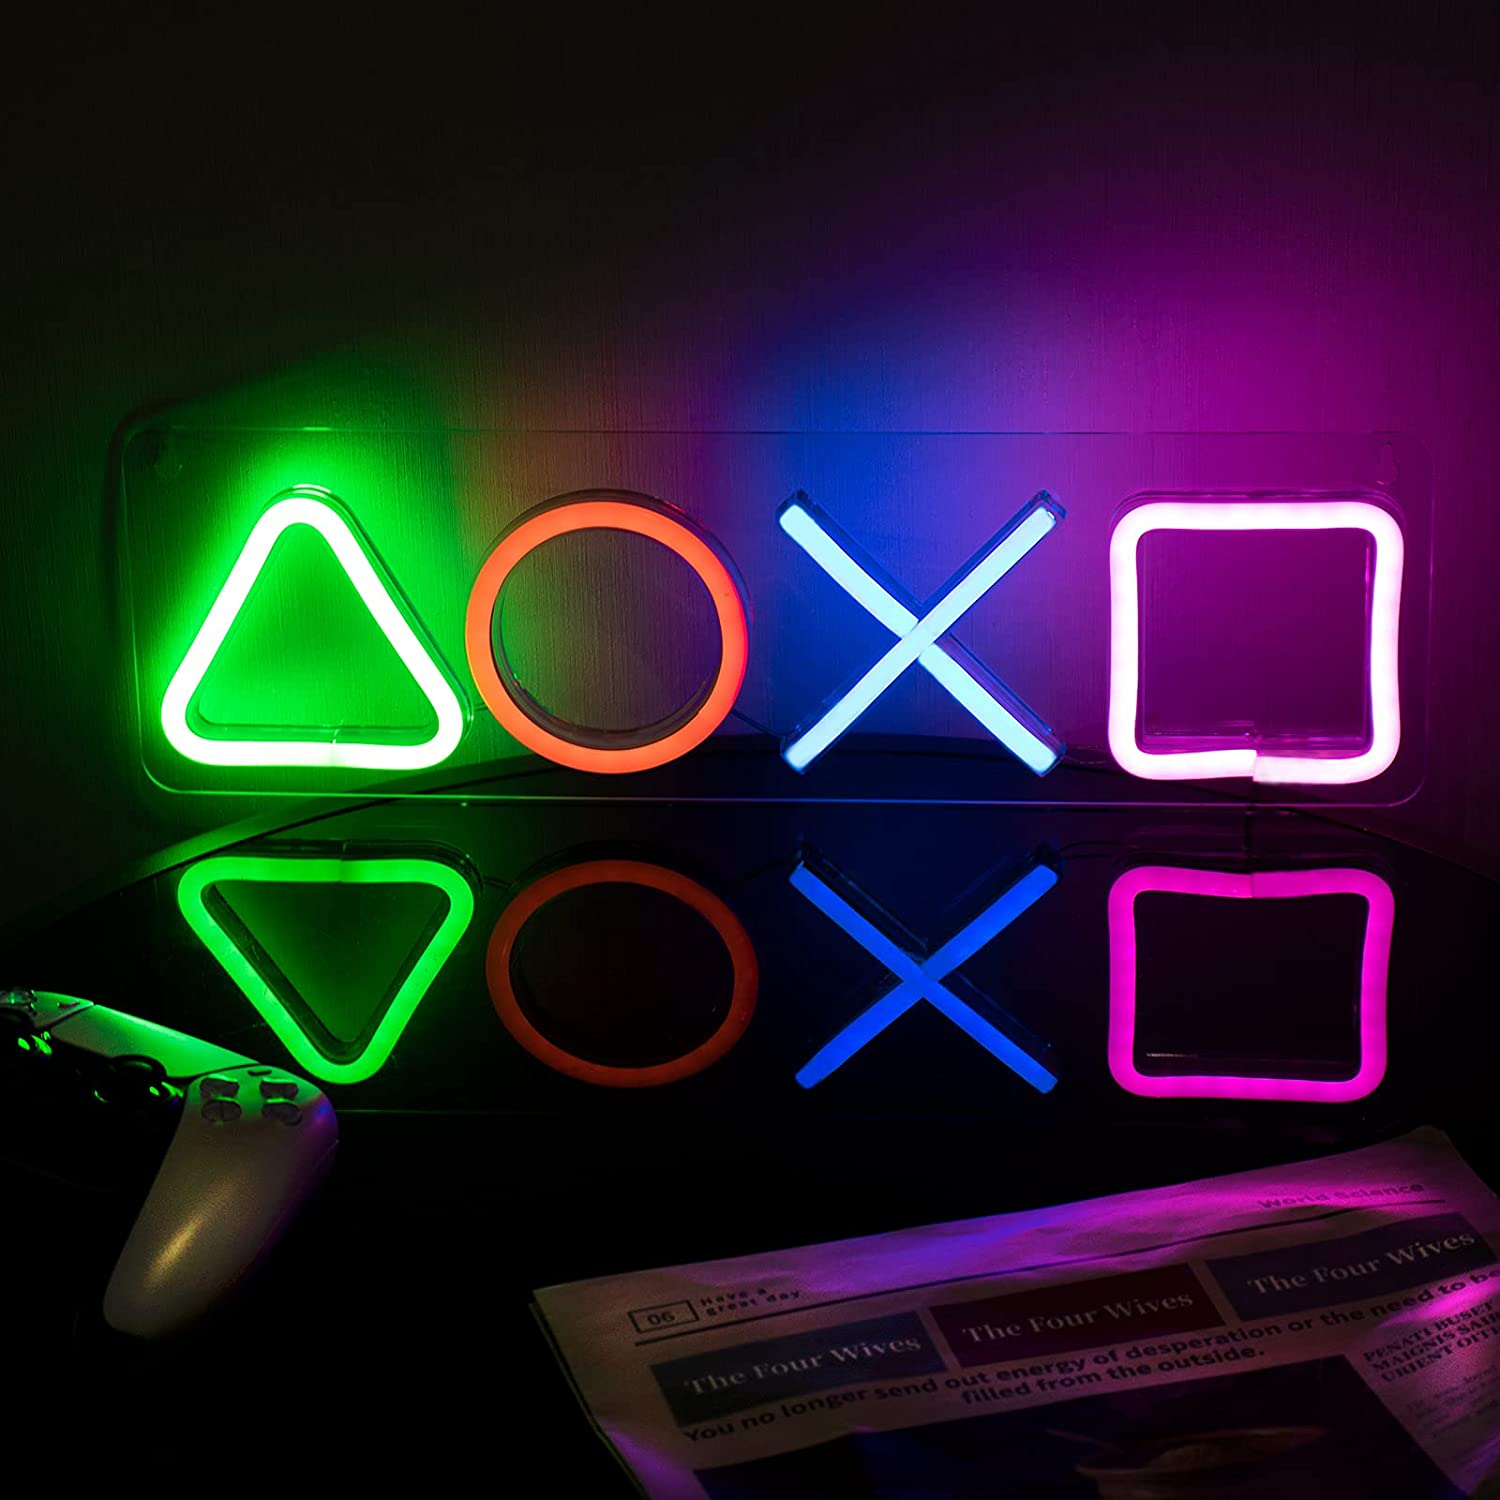 ifreelife Gaming Neon Signs(16.5''×4.96'') LED Gaming Neon Lights for Playstation Icon Bedroom Wall Decor Acrylic Board Led Light Signs for Game Room, Man Cave, Bar Club Decoration